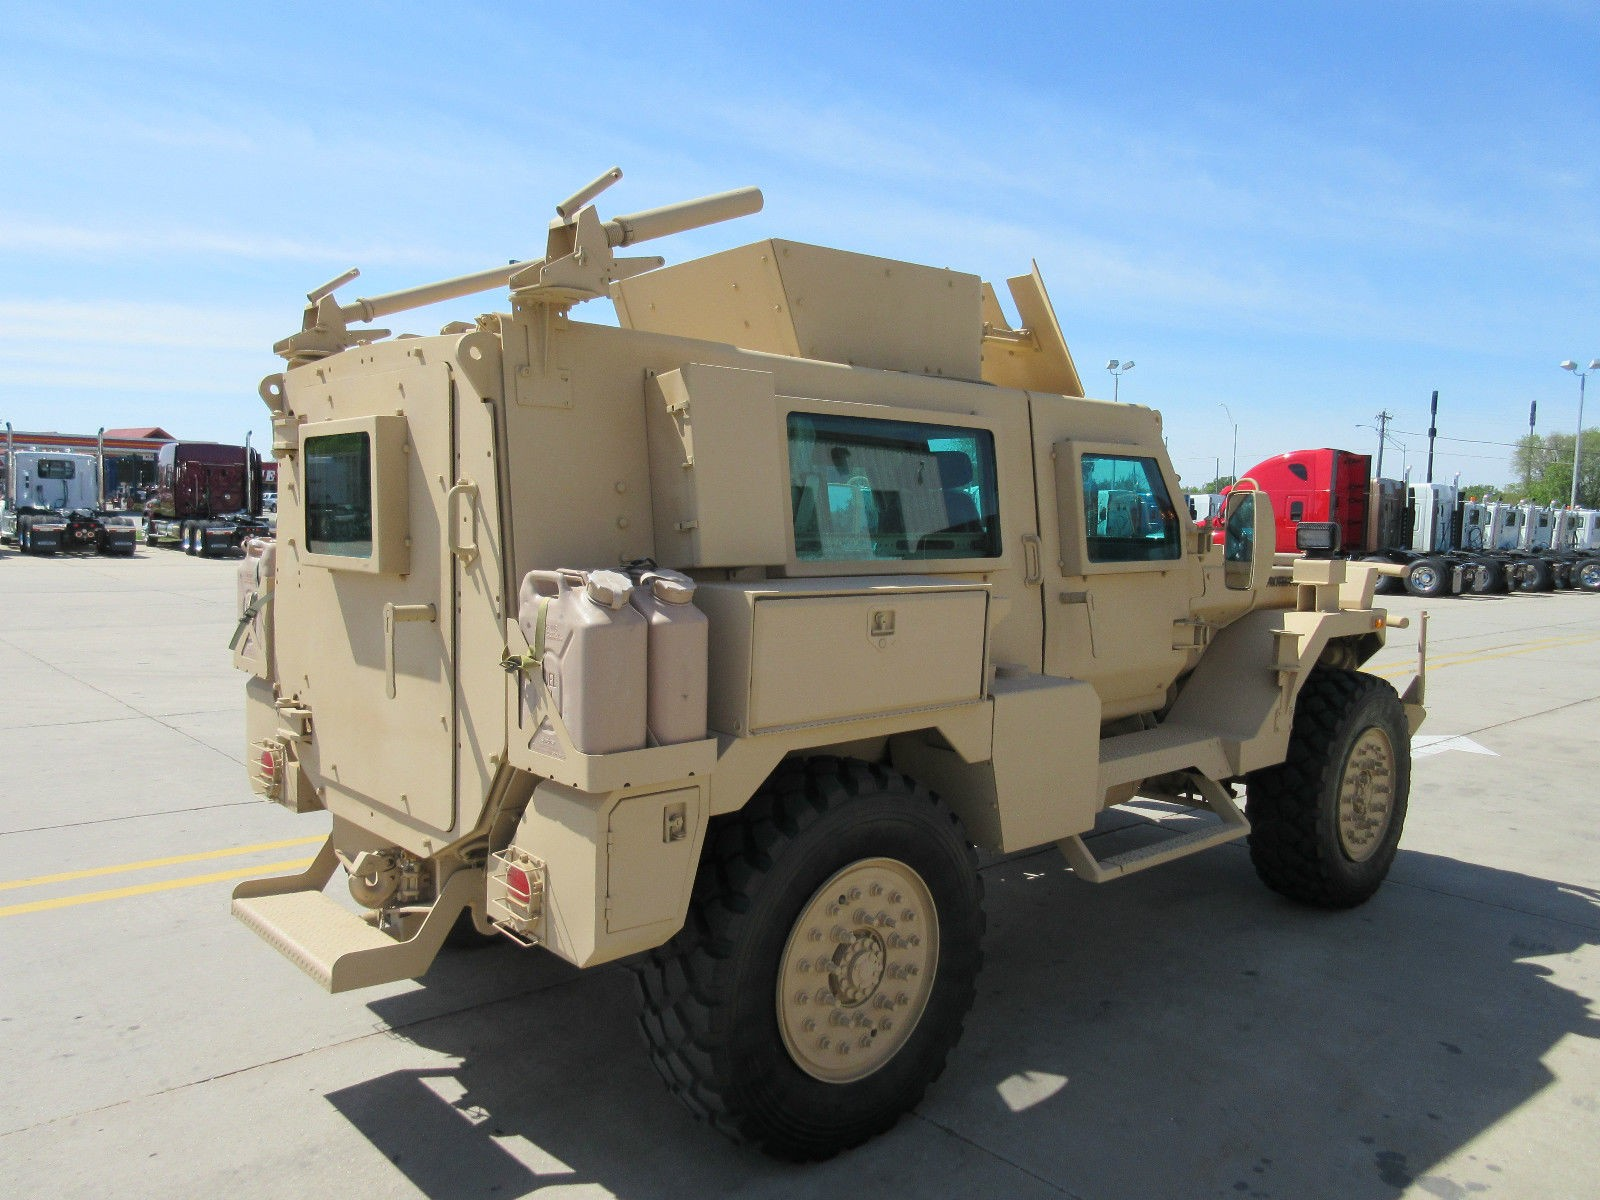 Used Armored Cars For Sale Ebay >> Armored Military Vehicle Used In Iron Man 3 Is On Ebay Autoevolution